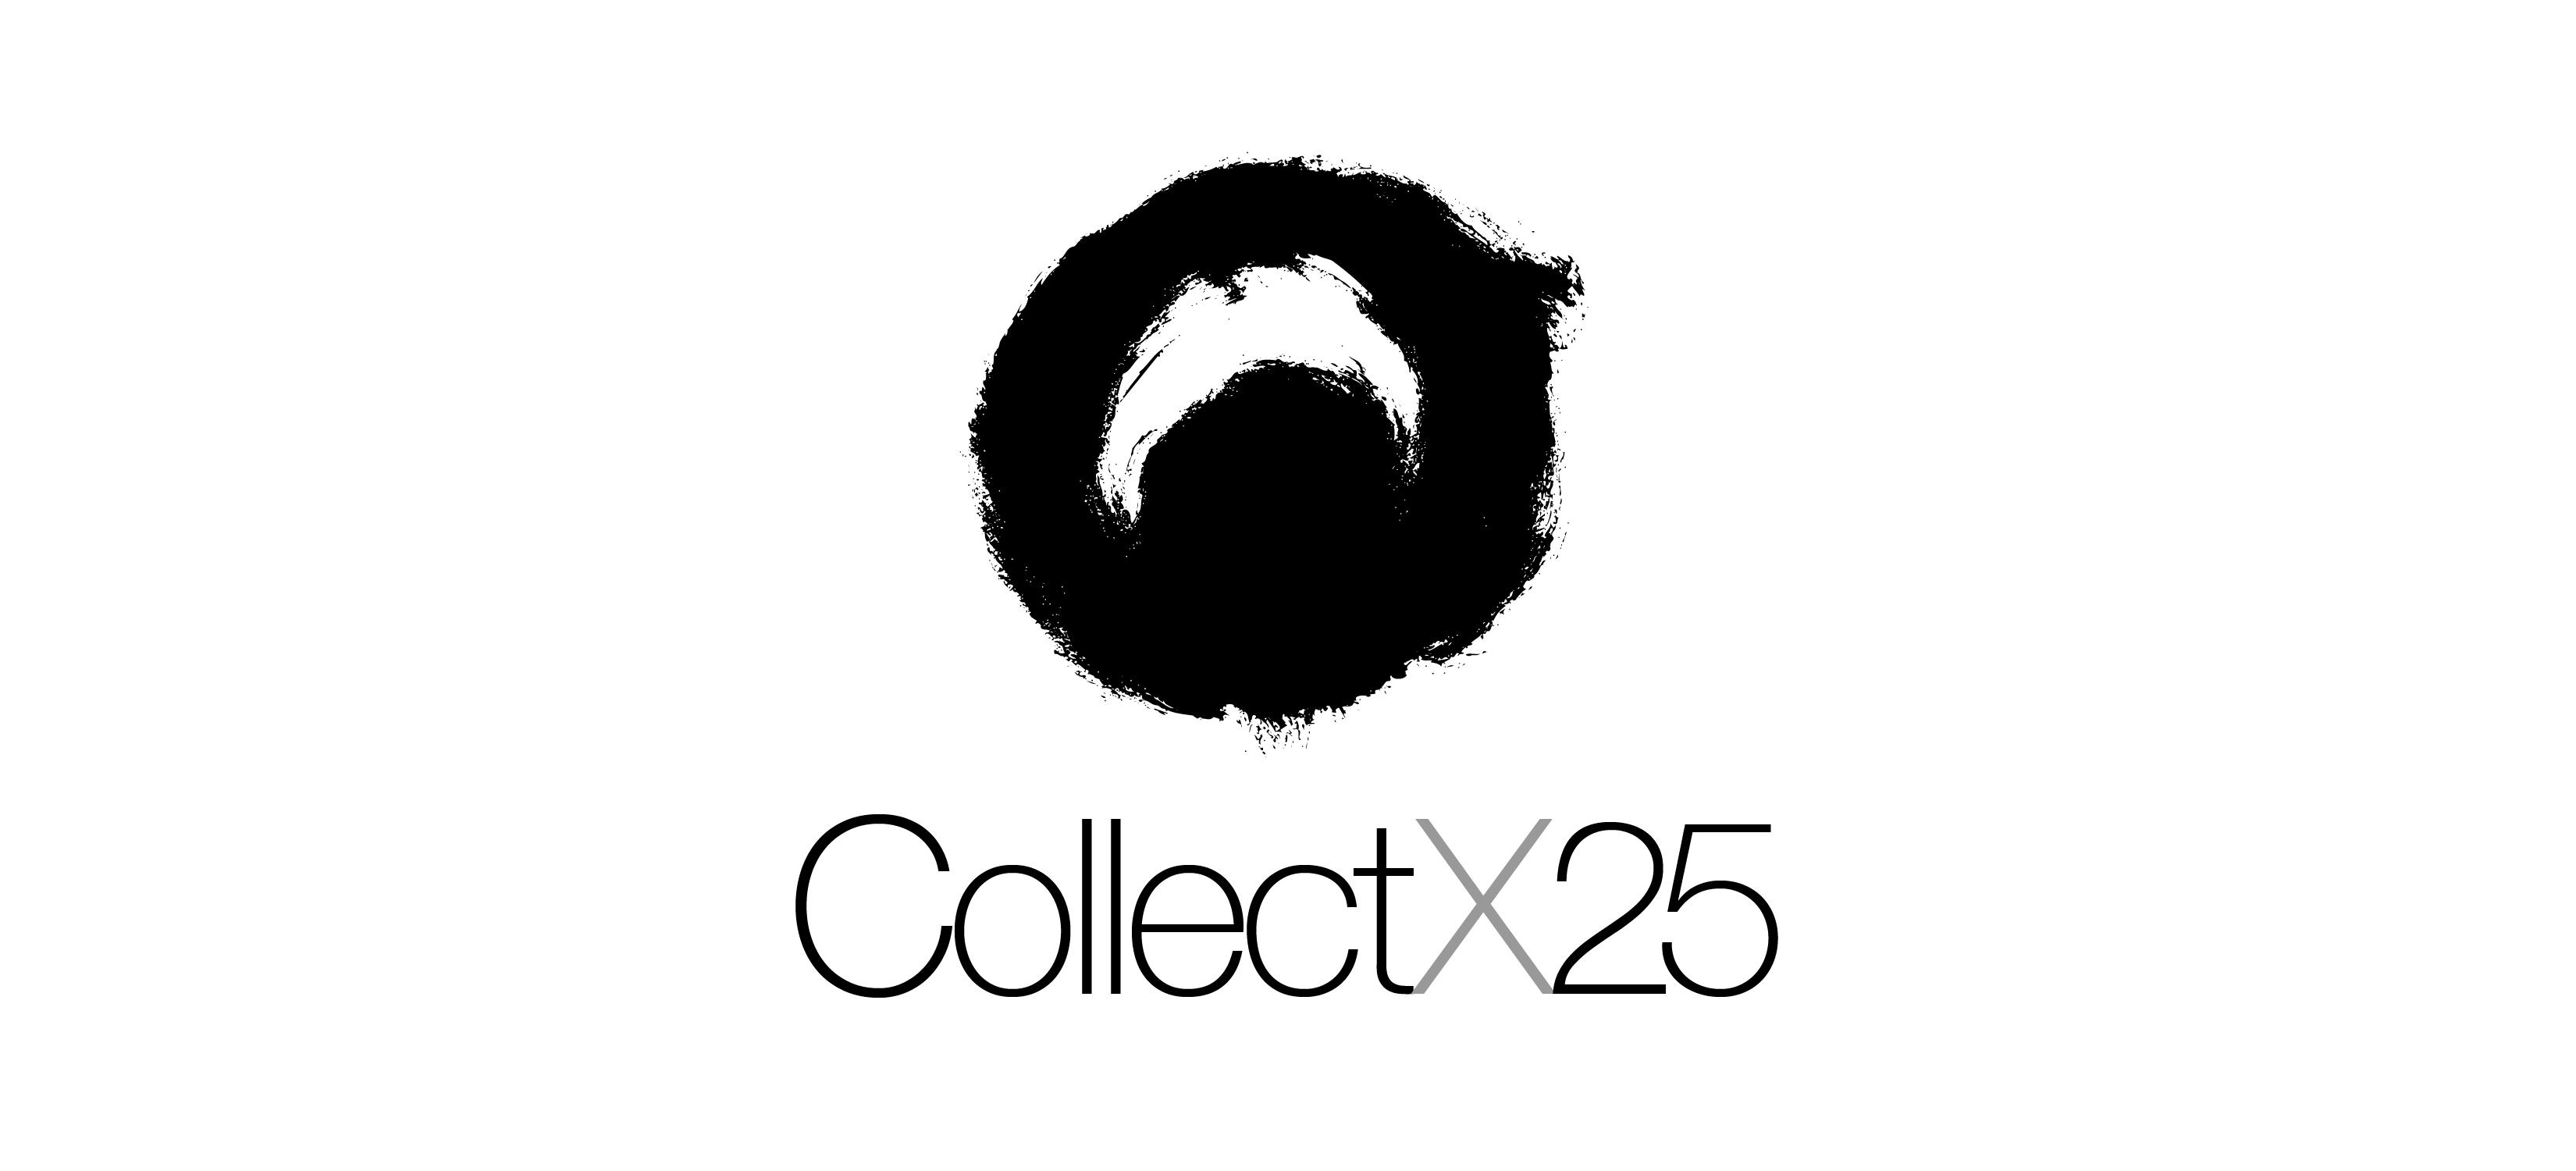 CollectX25: An Art Affair and Auction for All